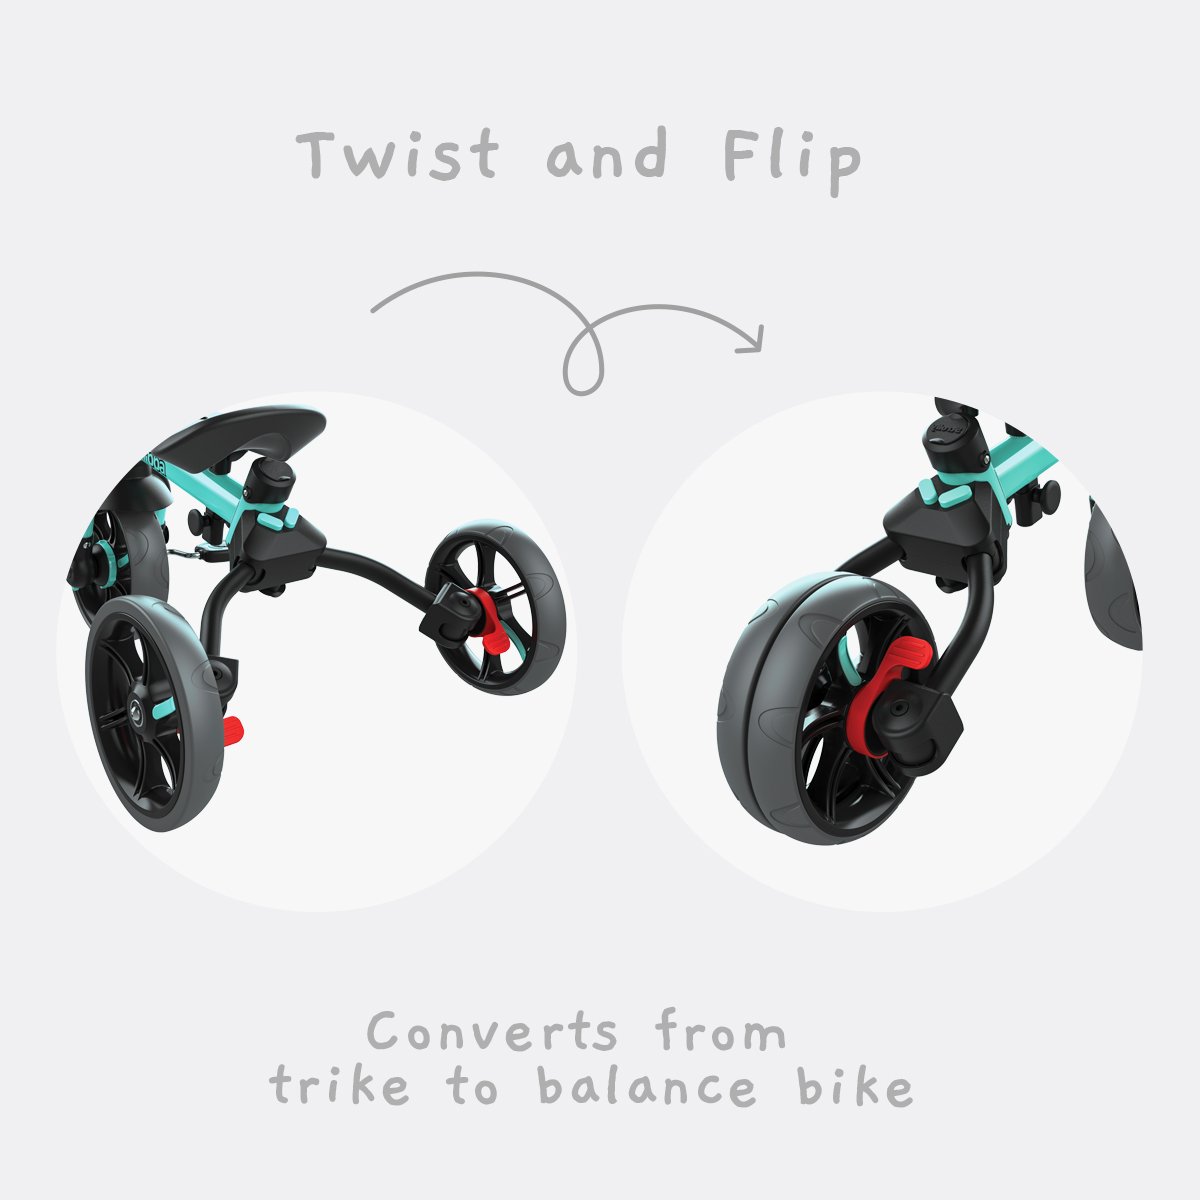 Twist and Flip - Converts from trike to balance bike